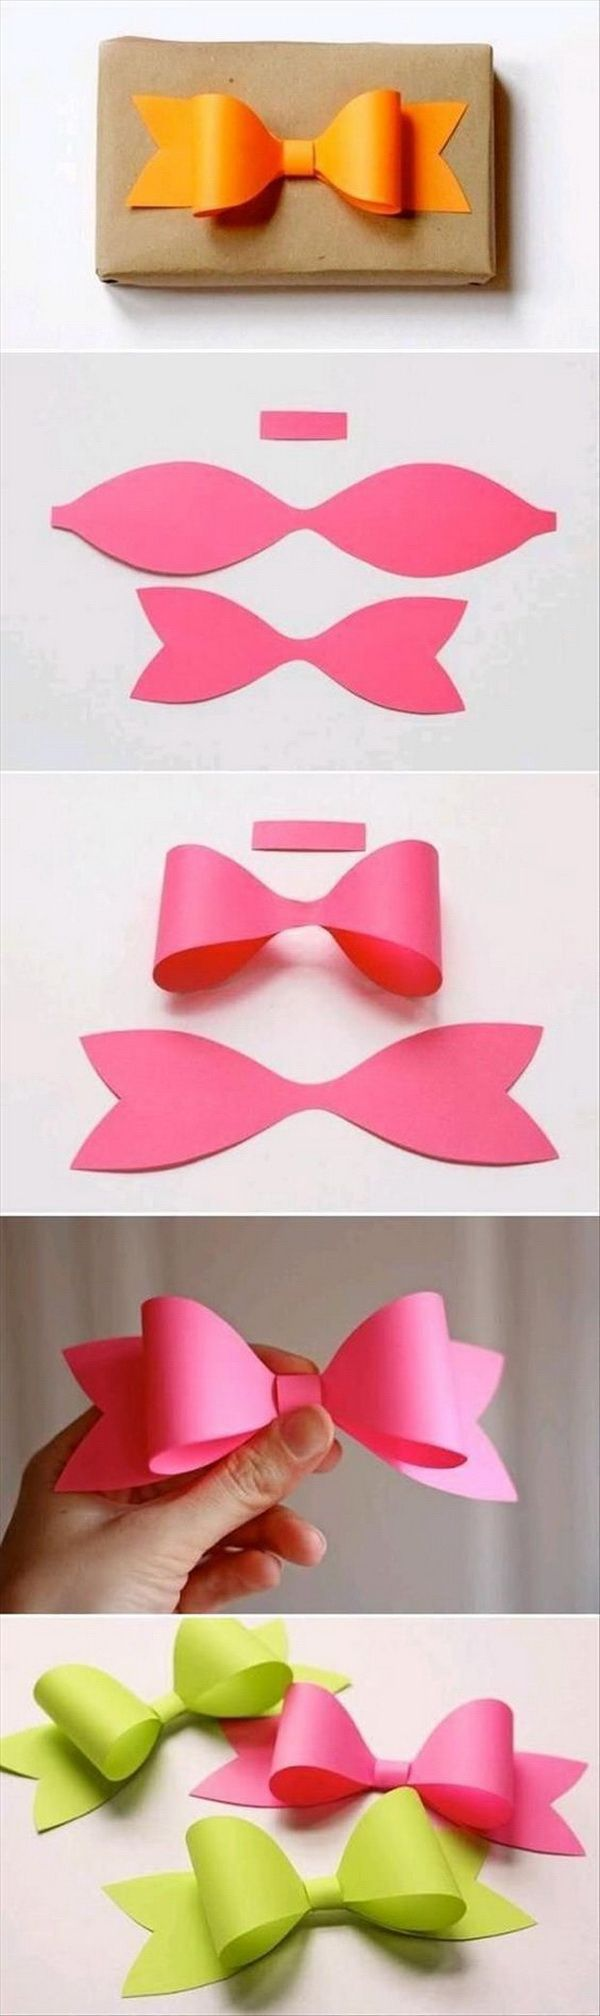 Easy Kids Craft Ideas: Gift Wrapping Bows.